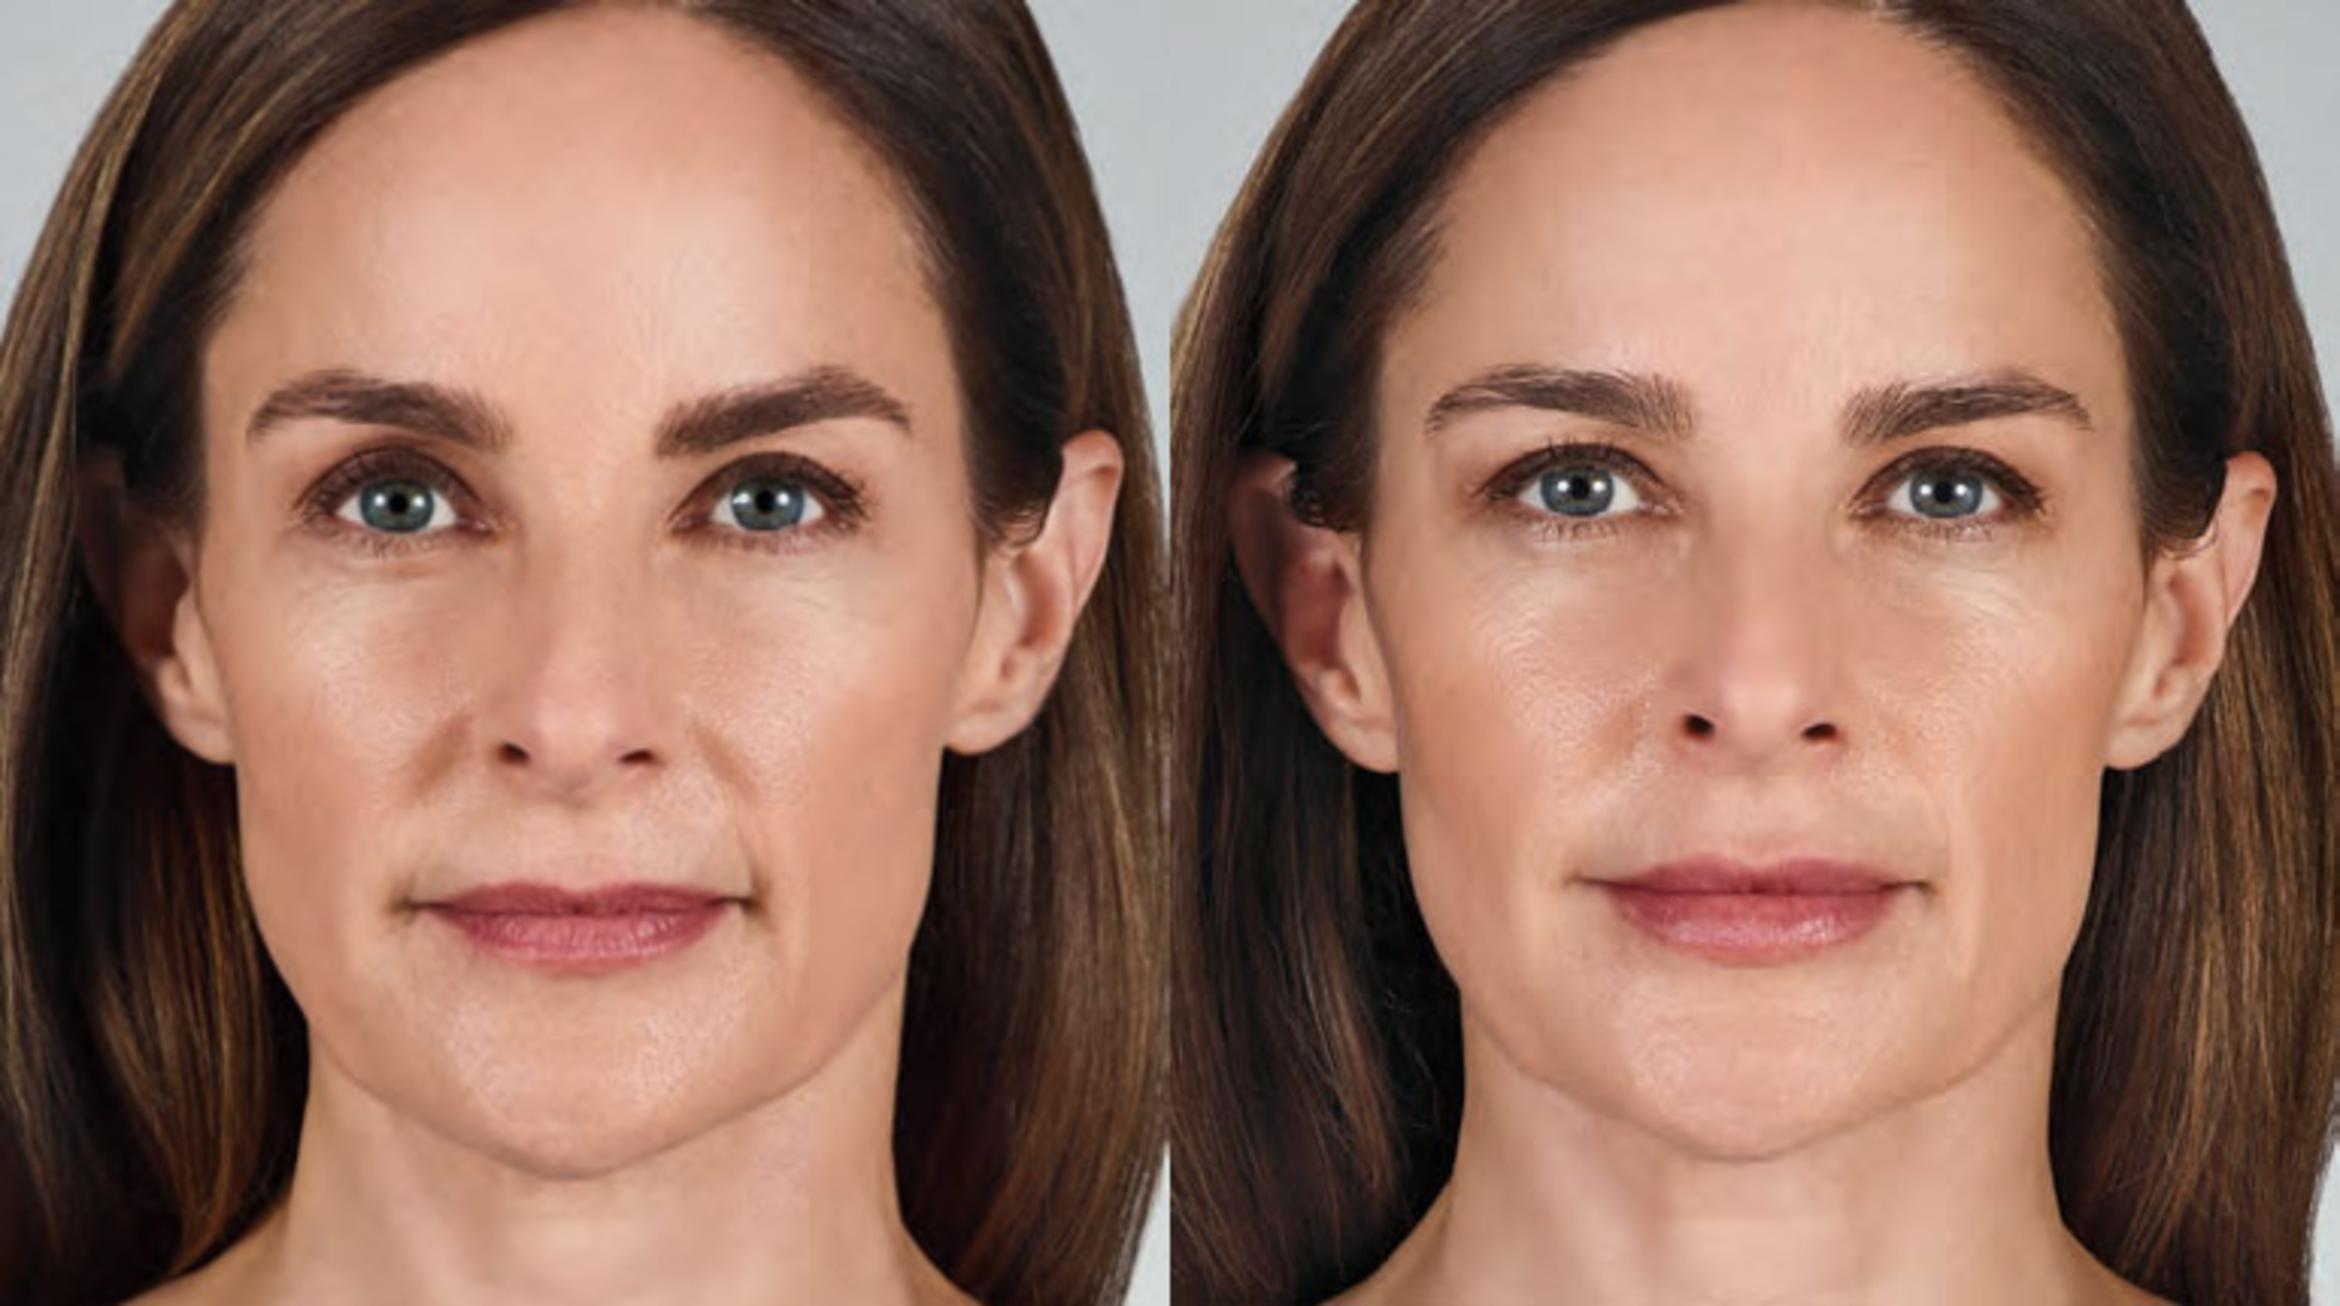 JUVÉDERM® Before & After Photo | Jersey City, New Jersey | The Derm Group